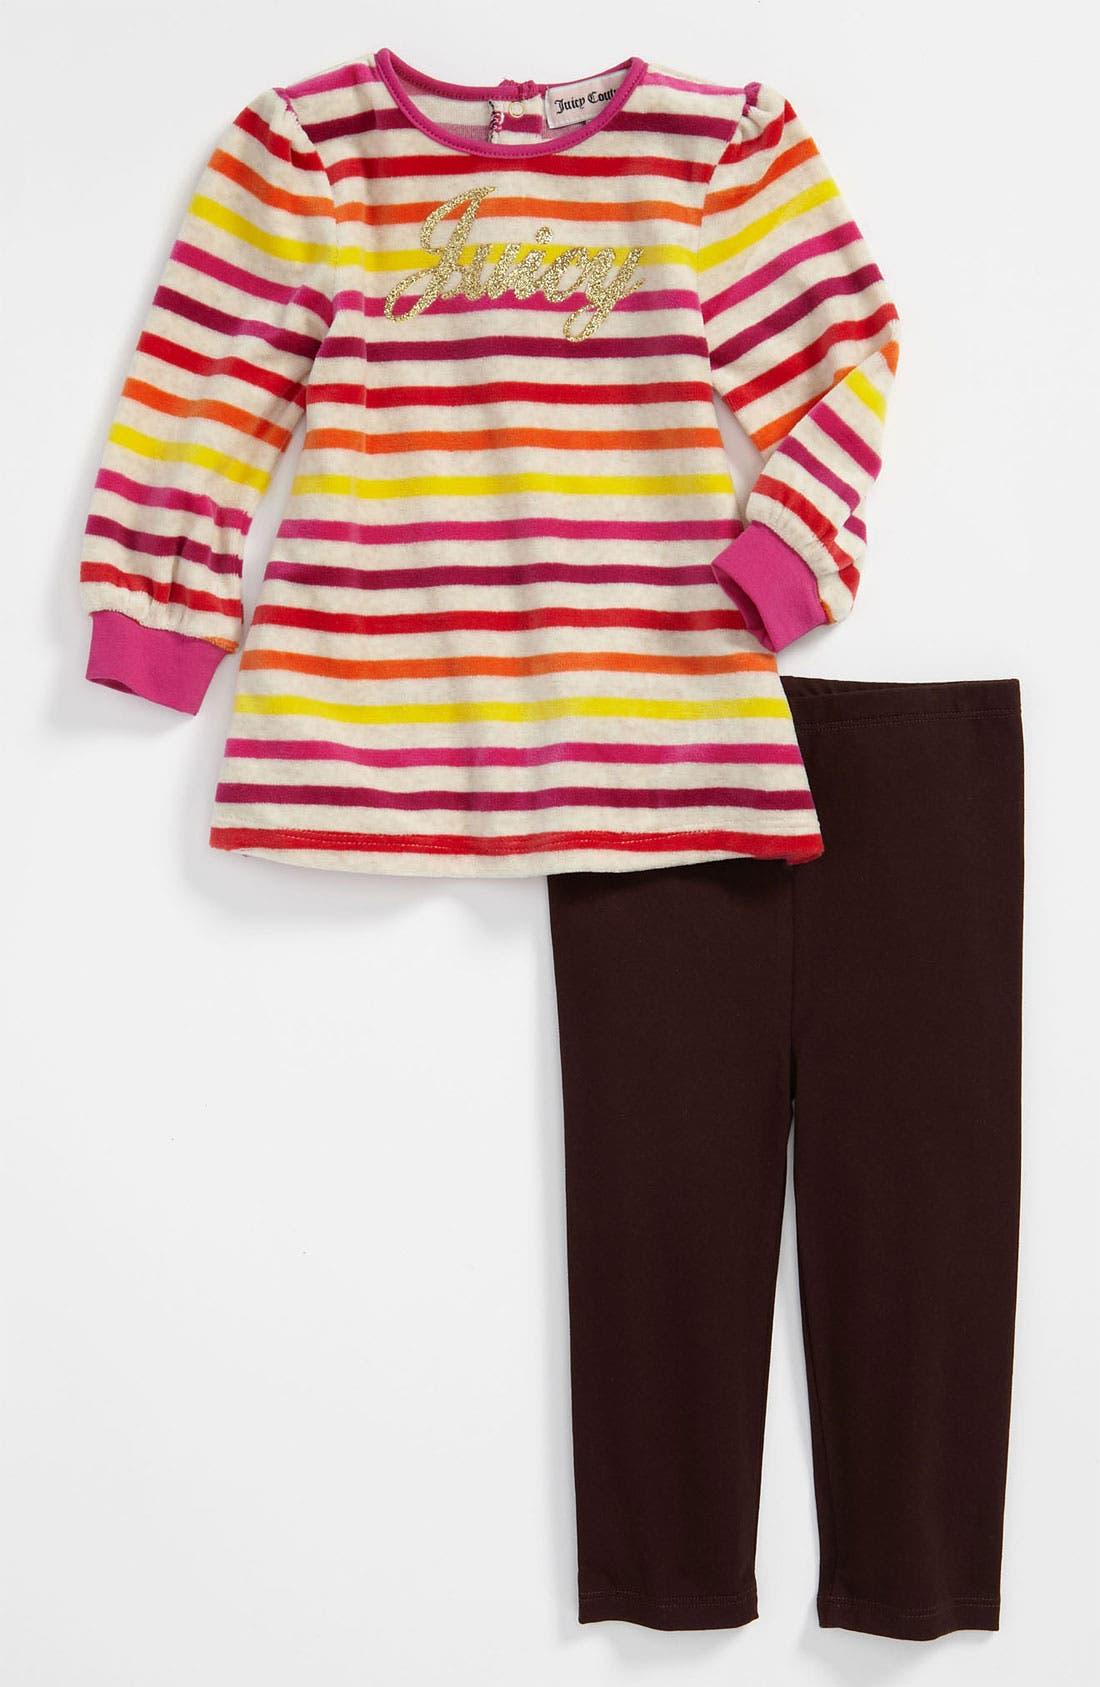 Main Image - Juicy Couture Tunic & Leggings (Infant)